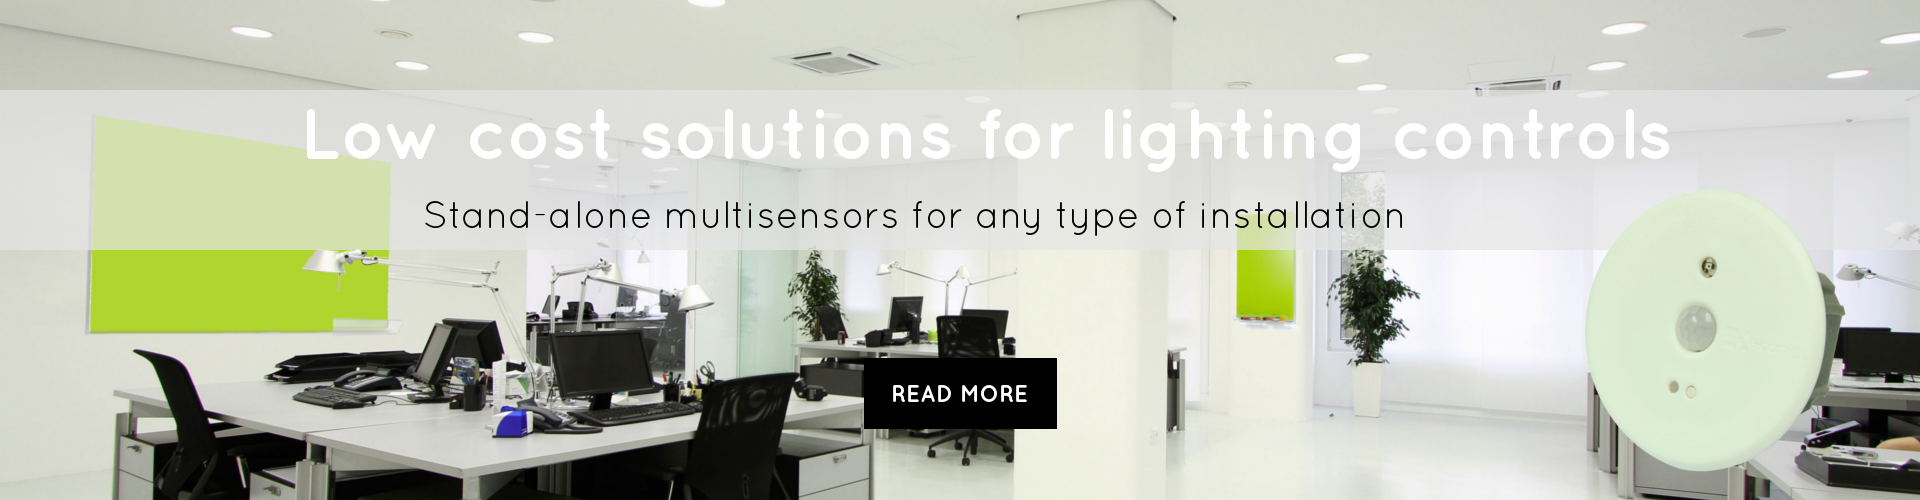 Low cost solutions for lighting controls stand-alone multisensors for any type of installation